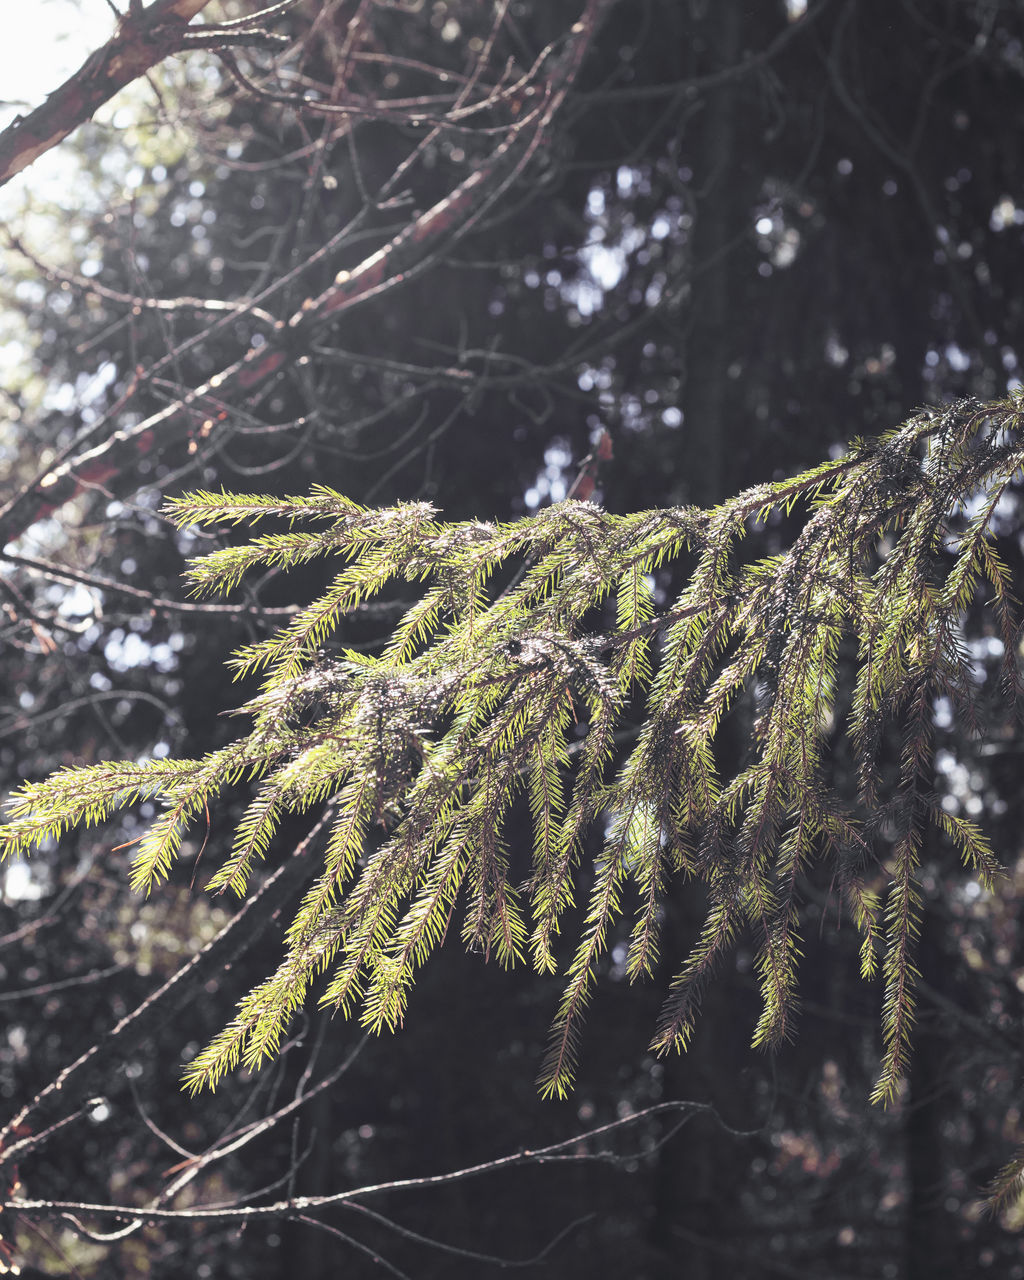 plant, tree, growth, no people, close-up, beauty in nature, nature, branch, focus on foreground, tranquility, day, green color, winter, fir tree, cold temperature, coniferous tree, outdoors, selective focus, pine tree, needle - plant part